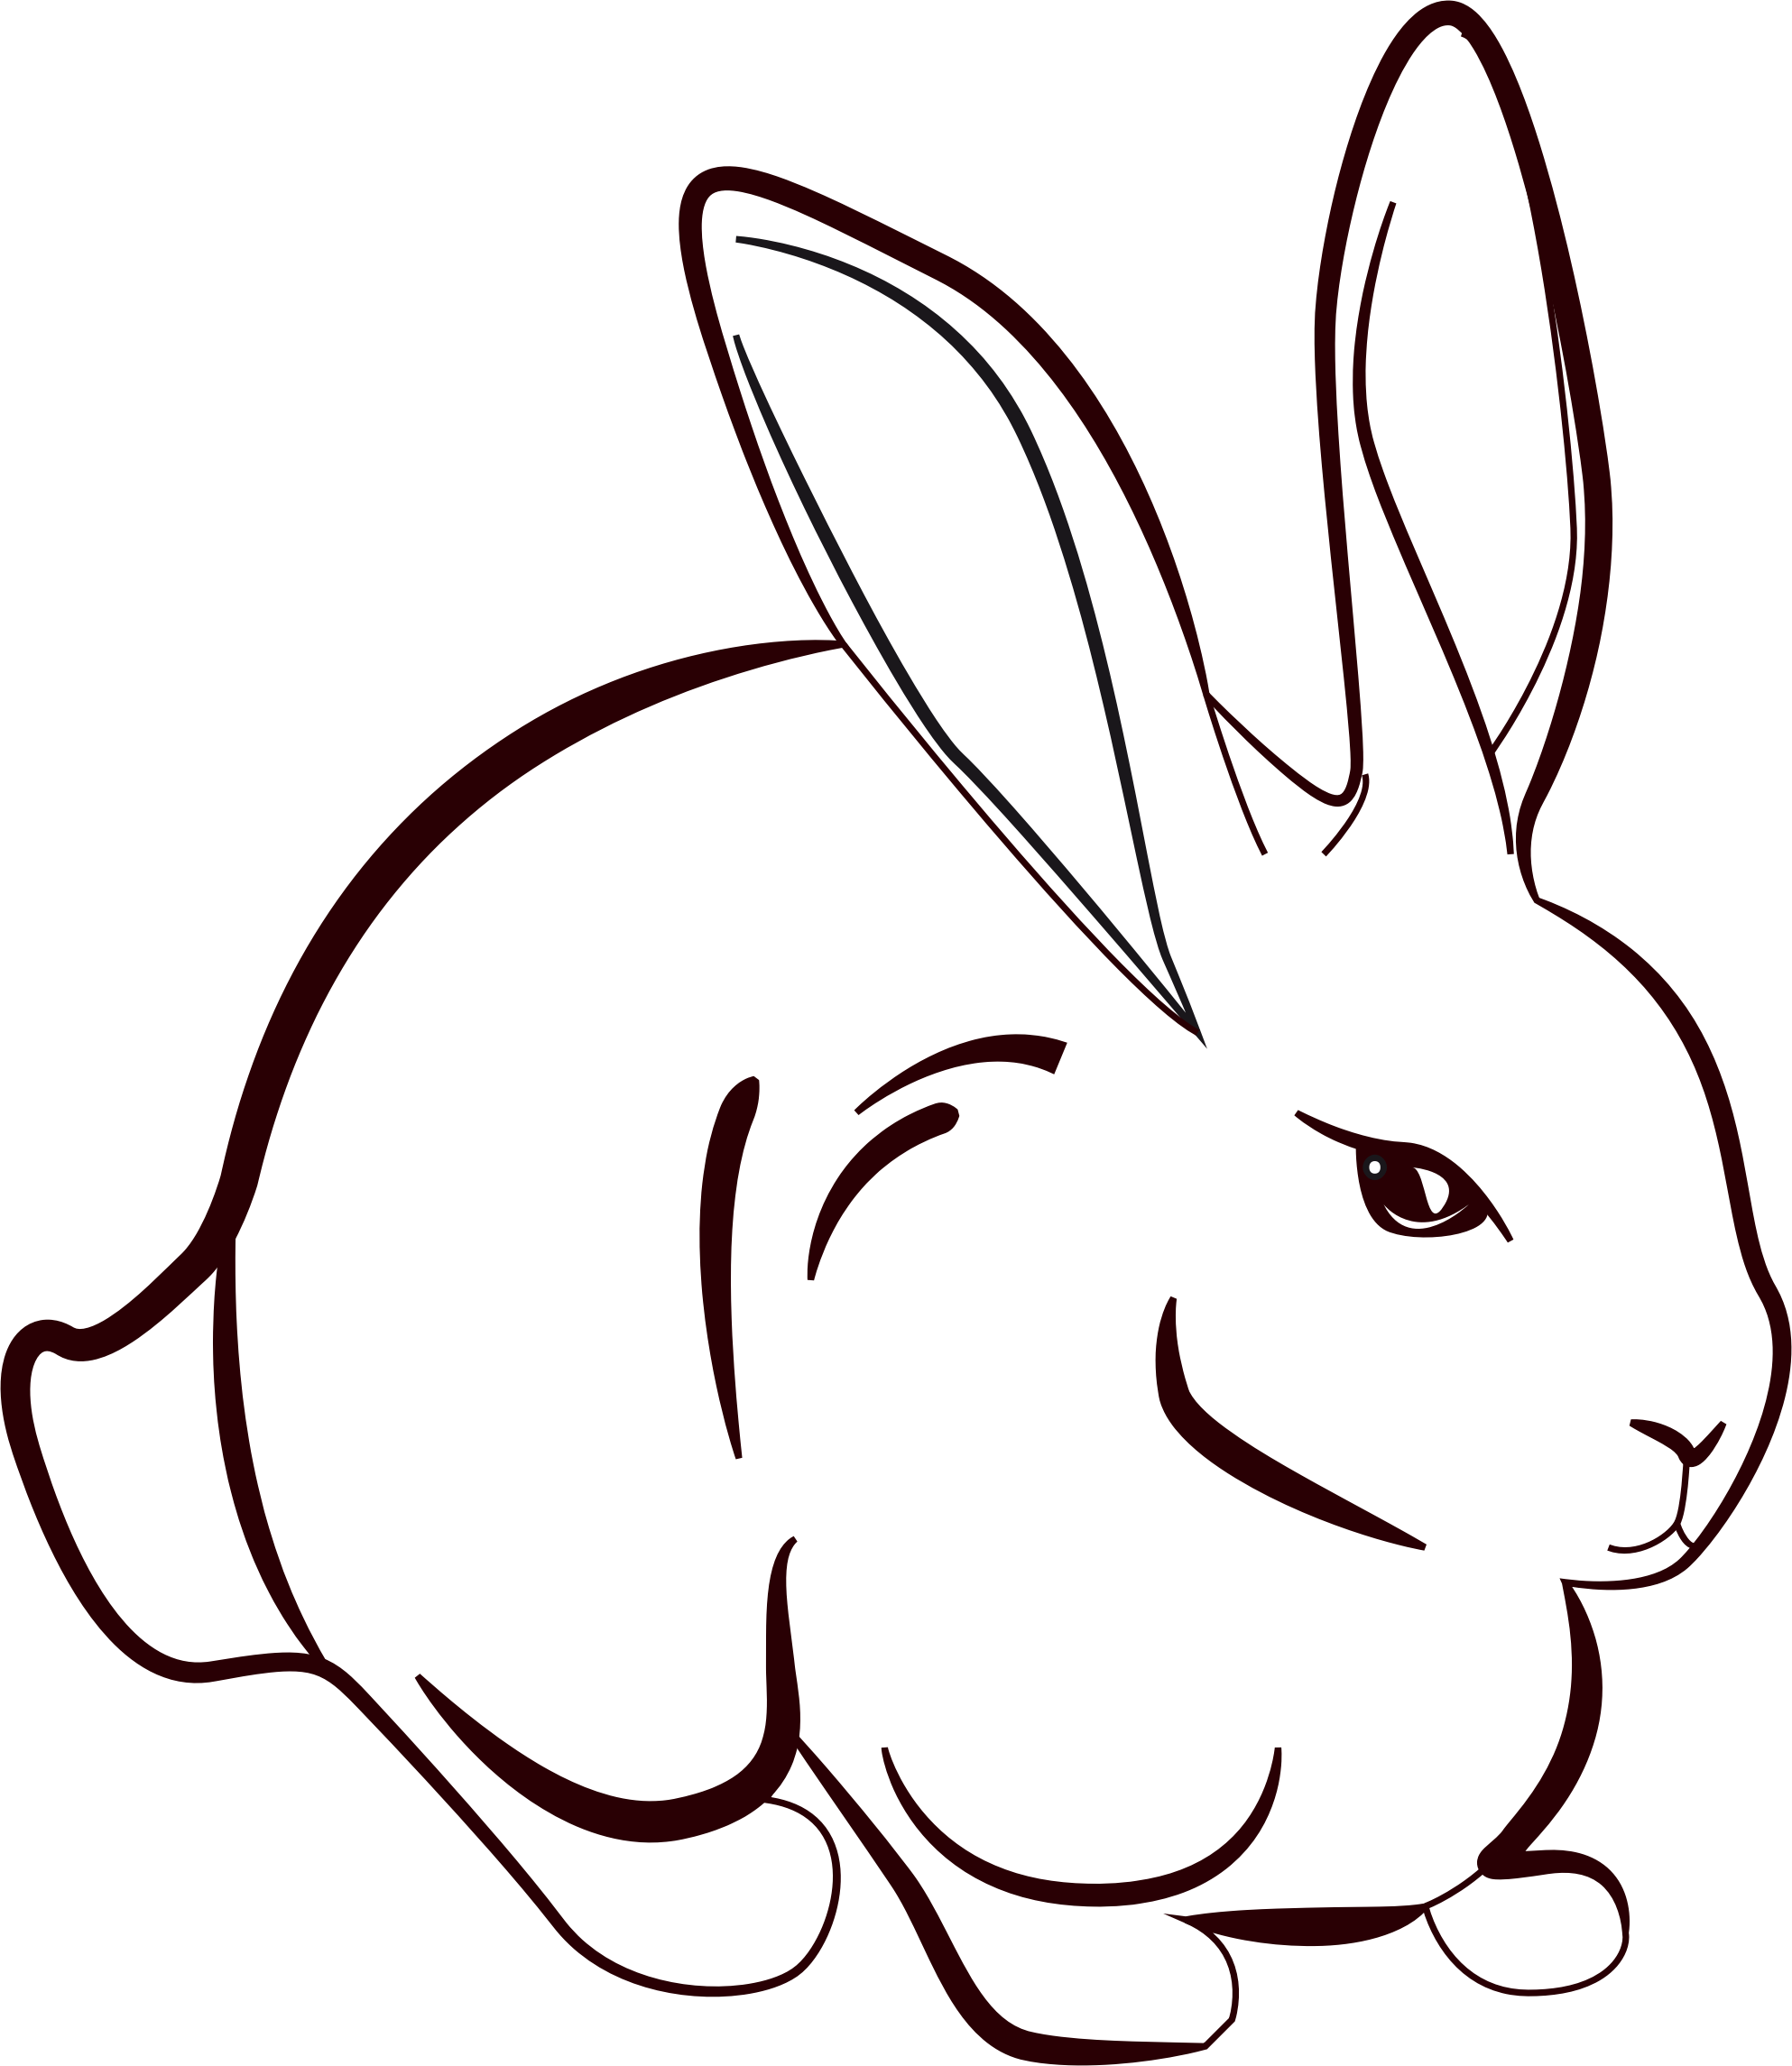 Hares drawing line. Image result for art